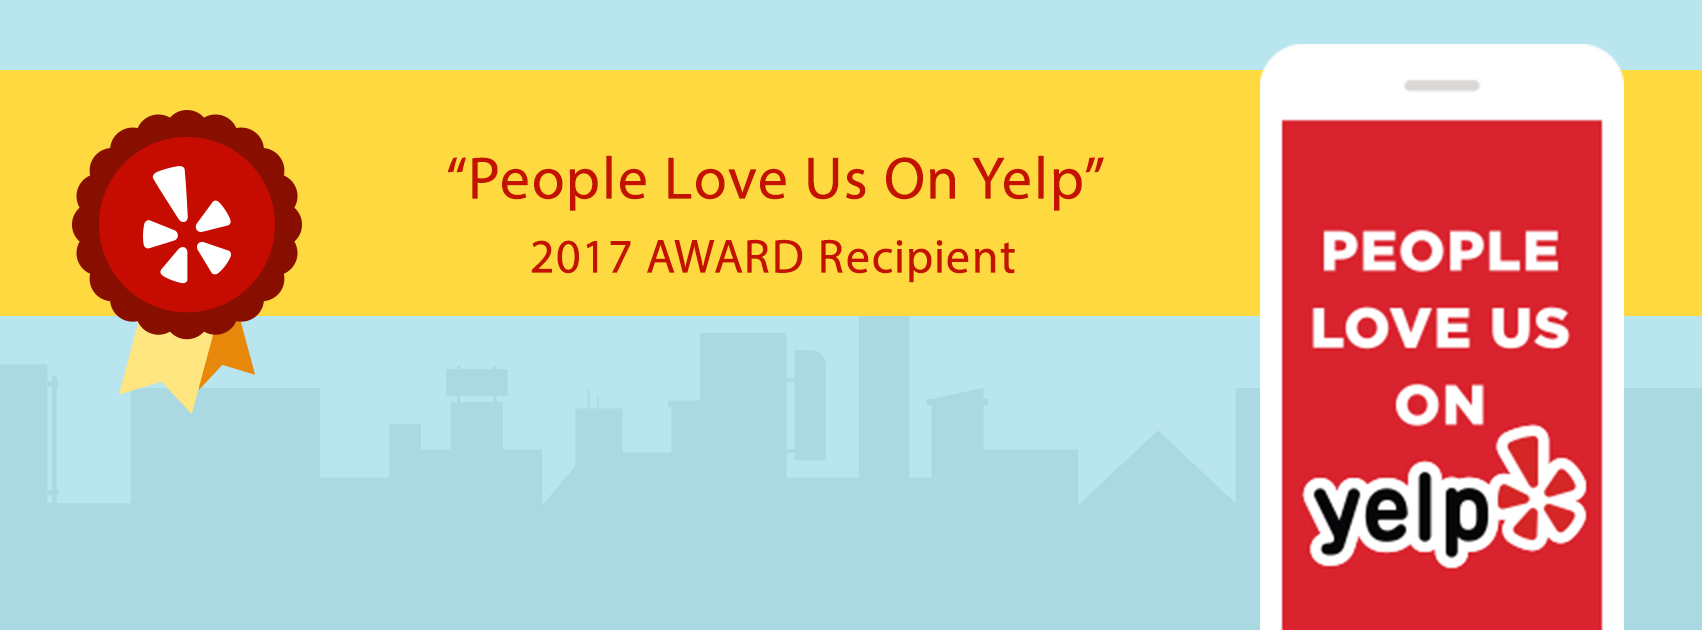 2017 award recipient from Yelp